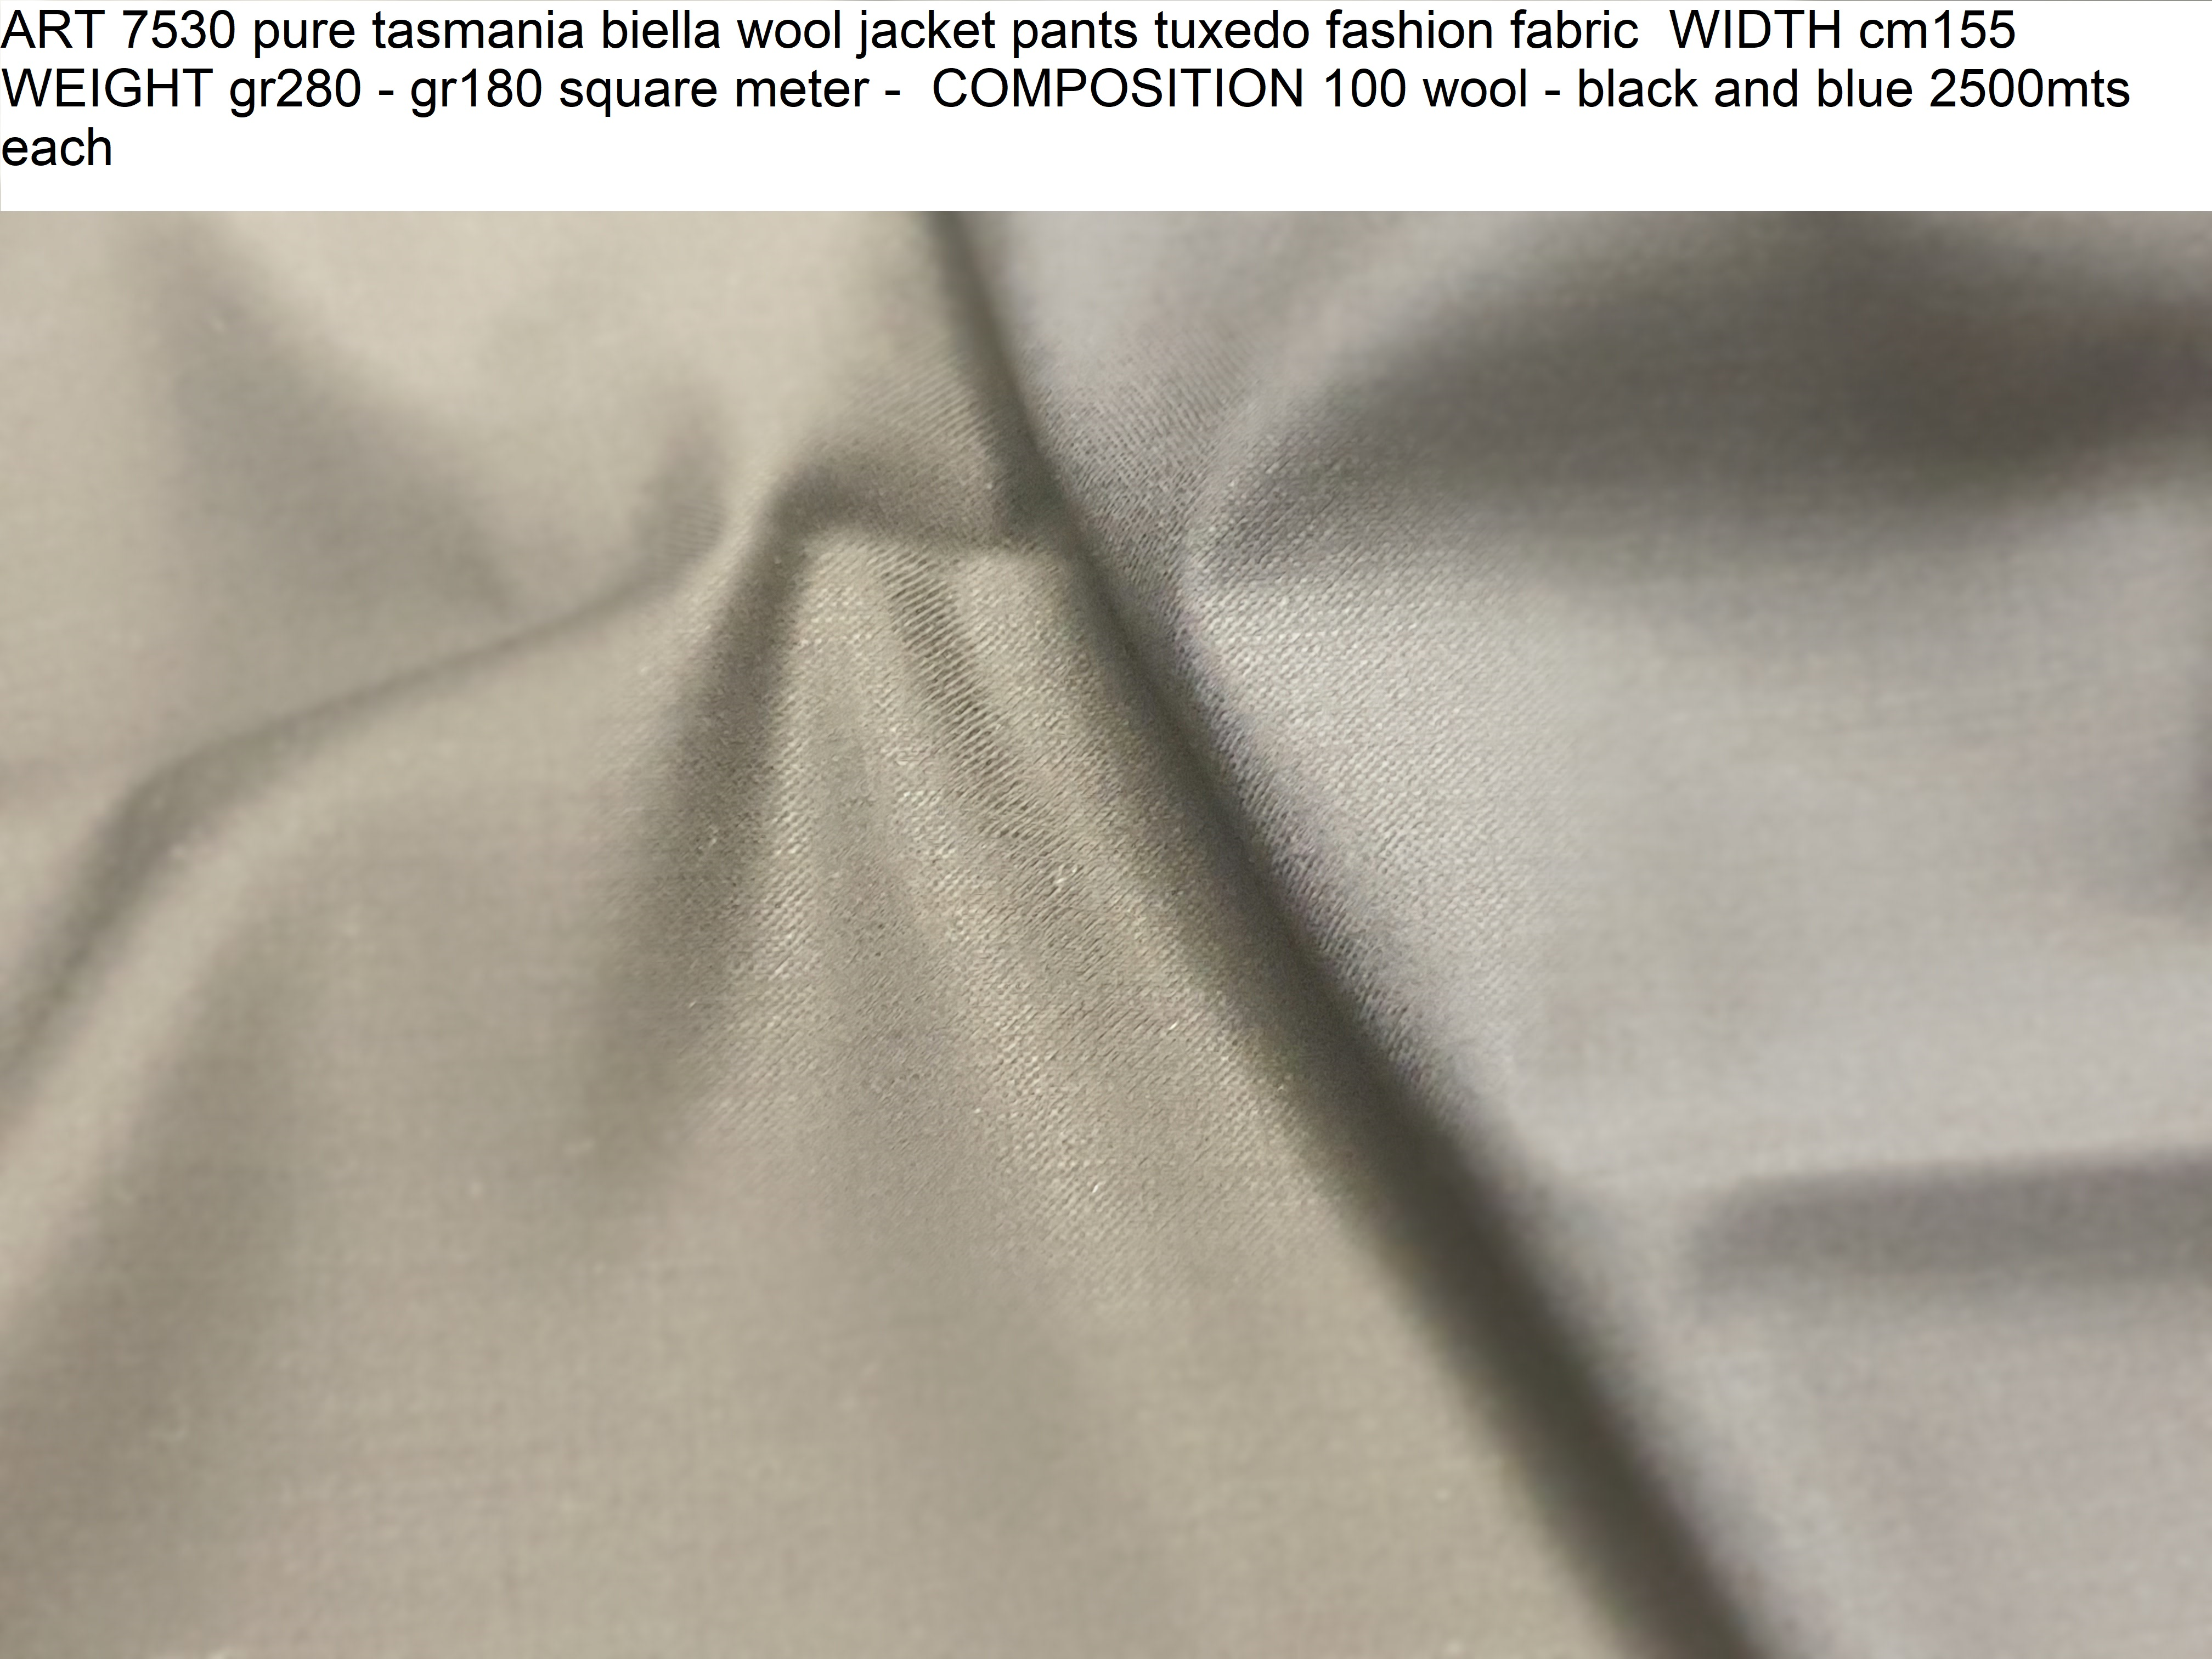 ART 7530 pure tasmania biella wool jacket pants tuxedo fashion fabric WIDTH cm155 WEIGHT gr280 - gr180 square meter - COMPOSITION 100 wool - black and blue 2500mts each